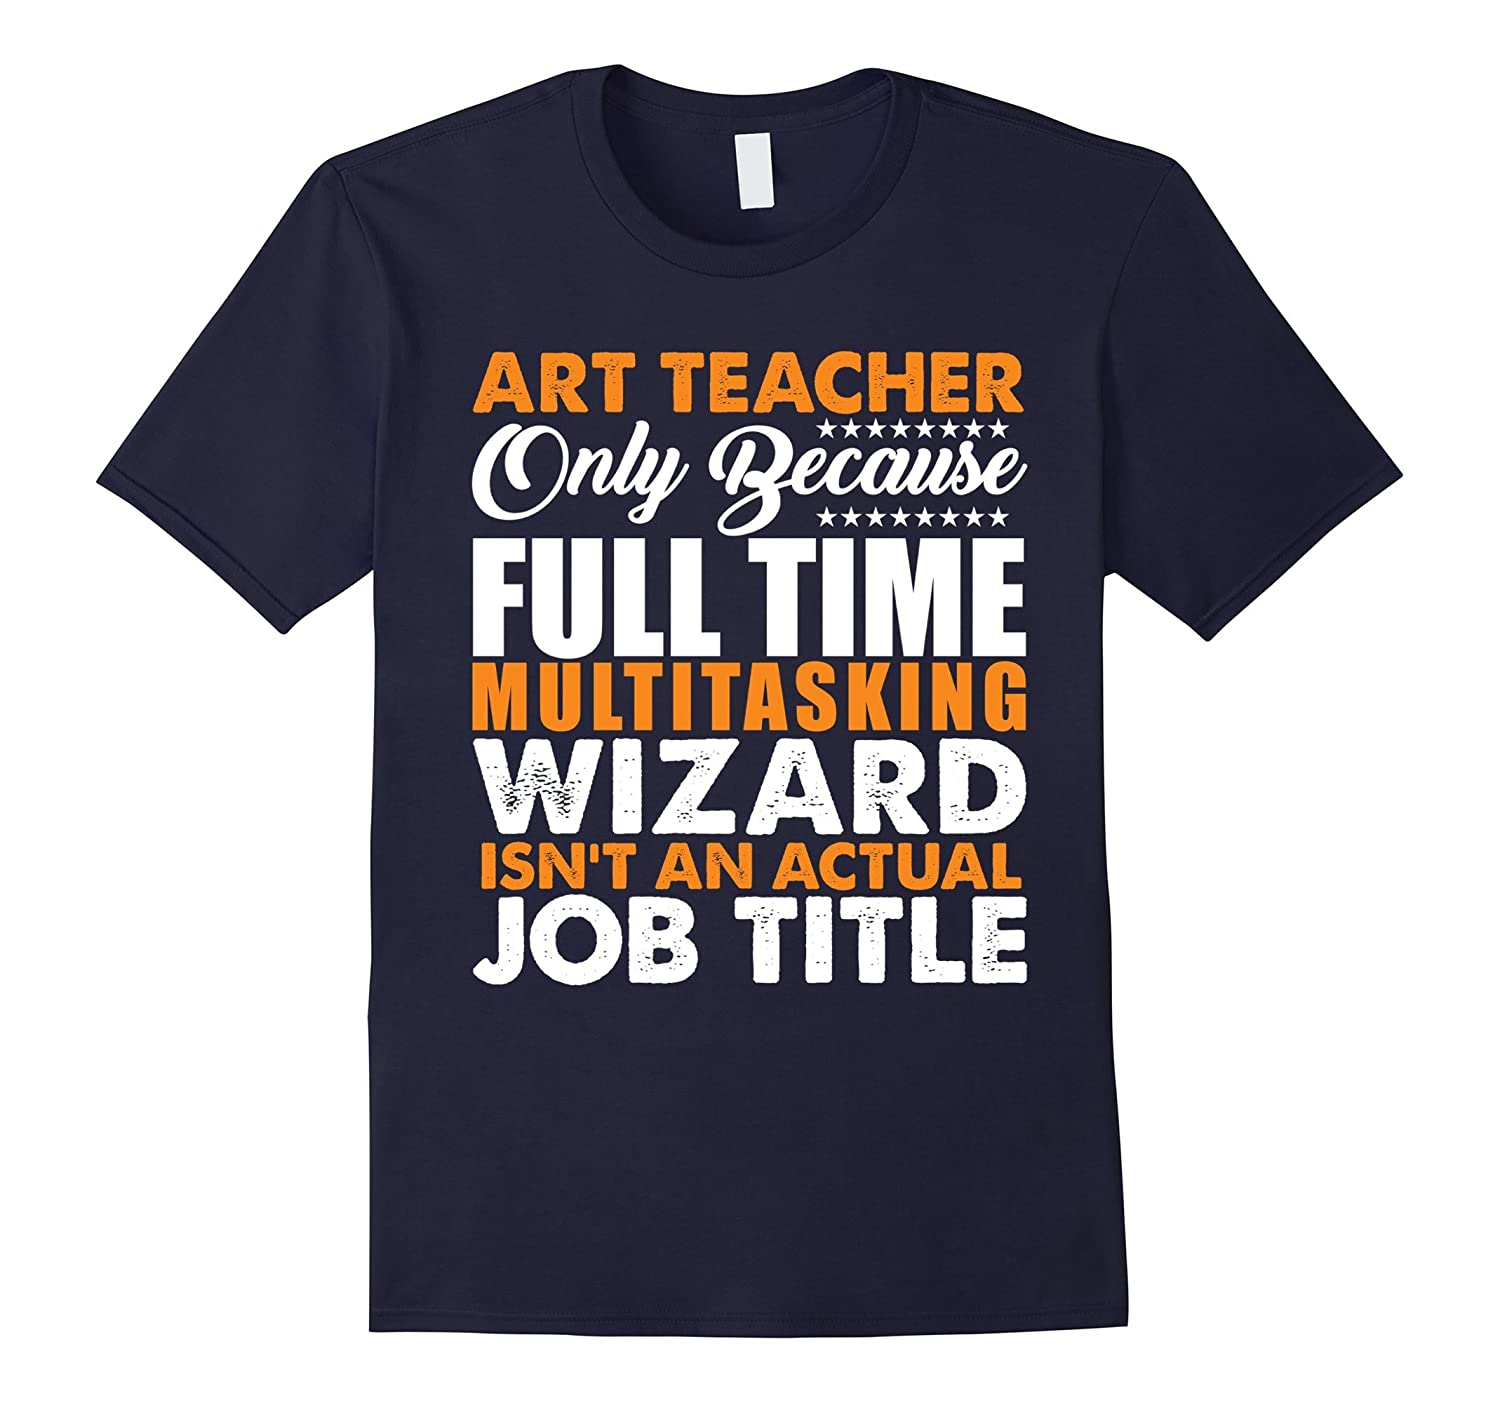 Art Teacher Is Not An Actual Job Title Funny T-Shirt-Rose